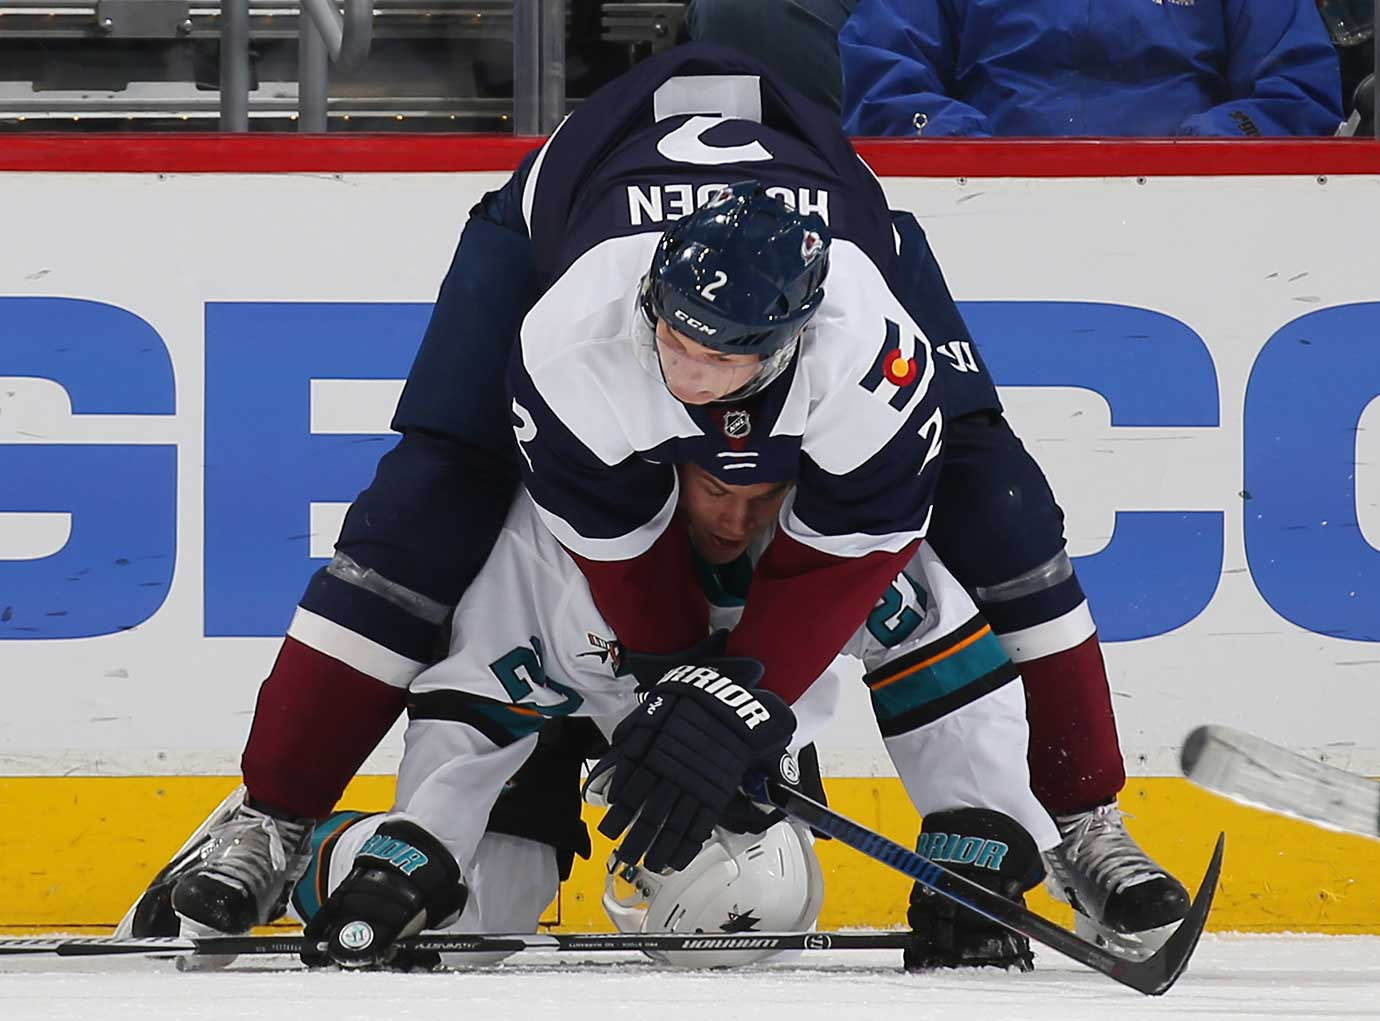 Nick Holden of the Colorado Avalanche falls on top of Joonas Donskoi of the San Jose Sharks.